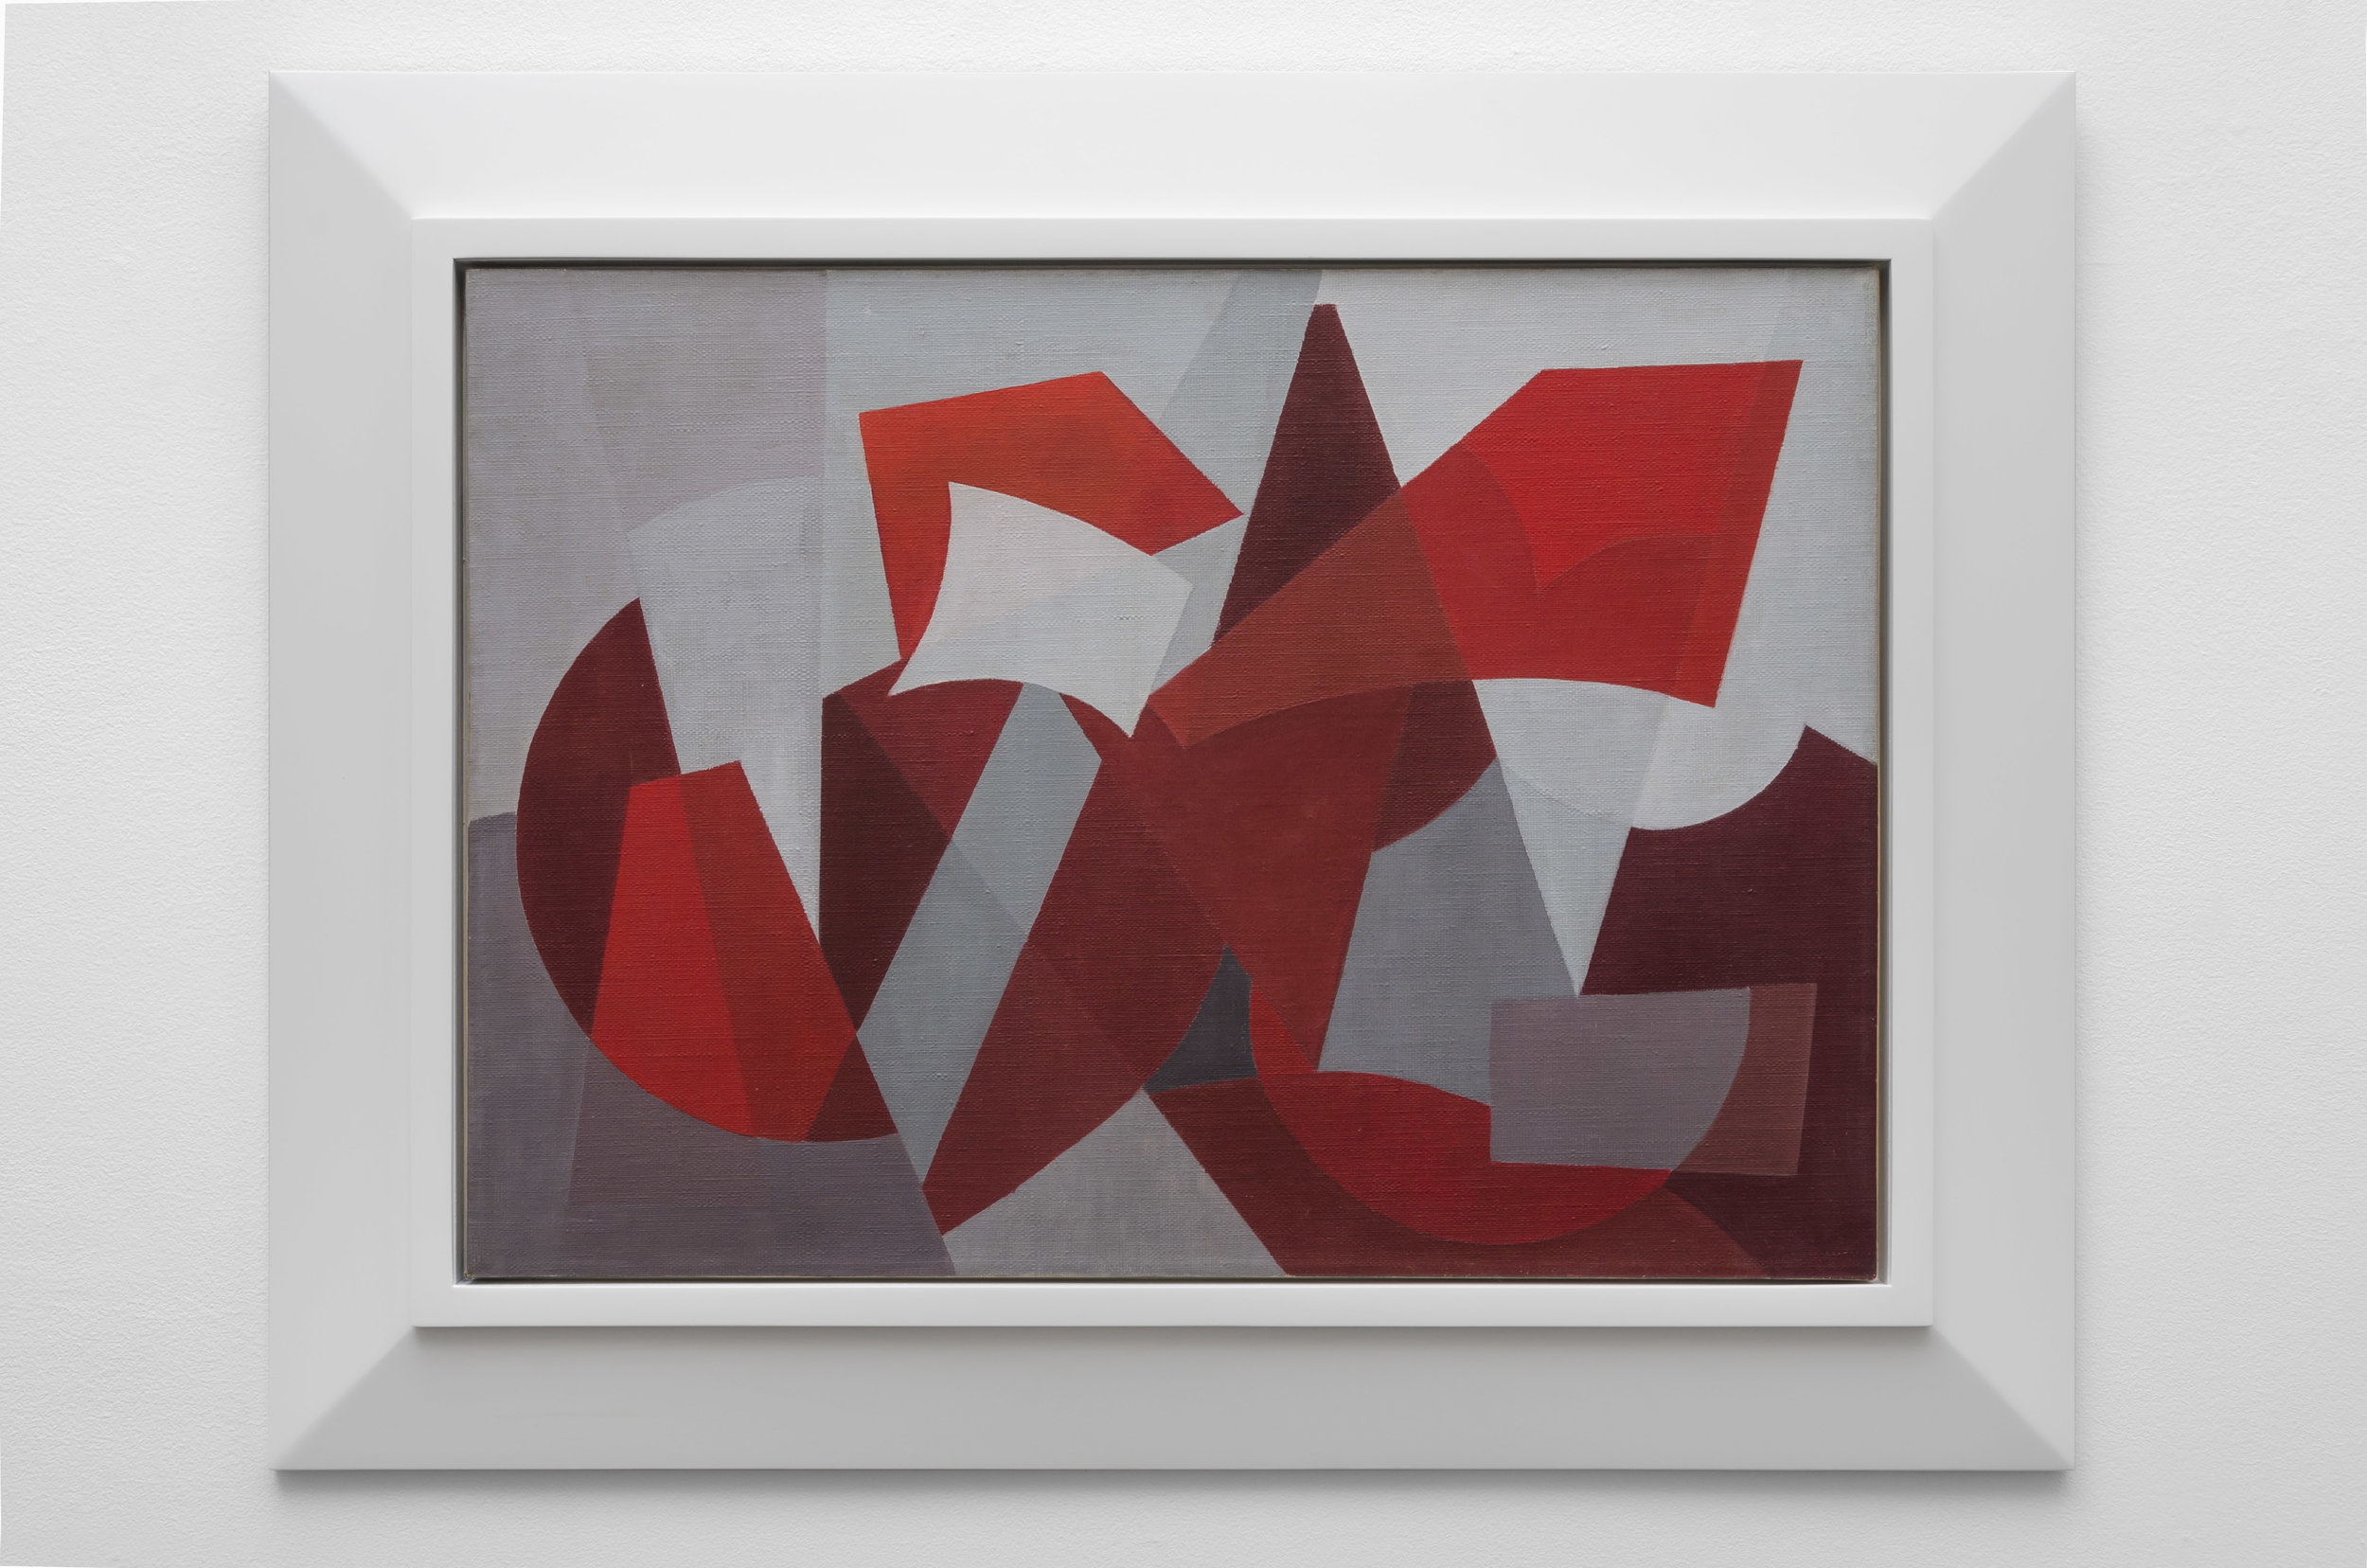 Composición , 1963  oil on canvas 19 3/4 x 27 1/2 inches; 50 x 70 centimeters